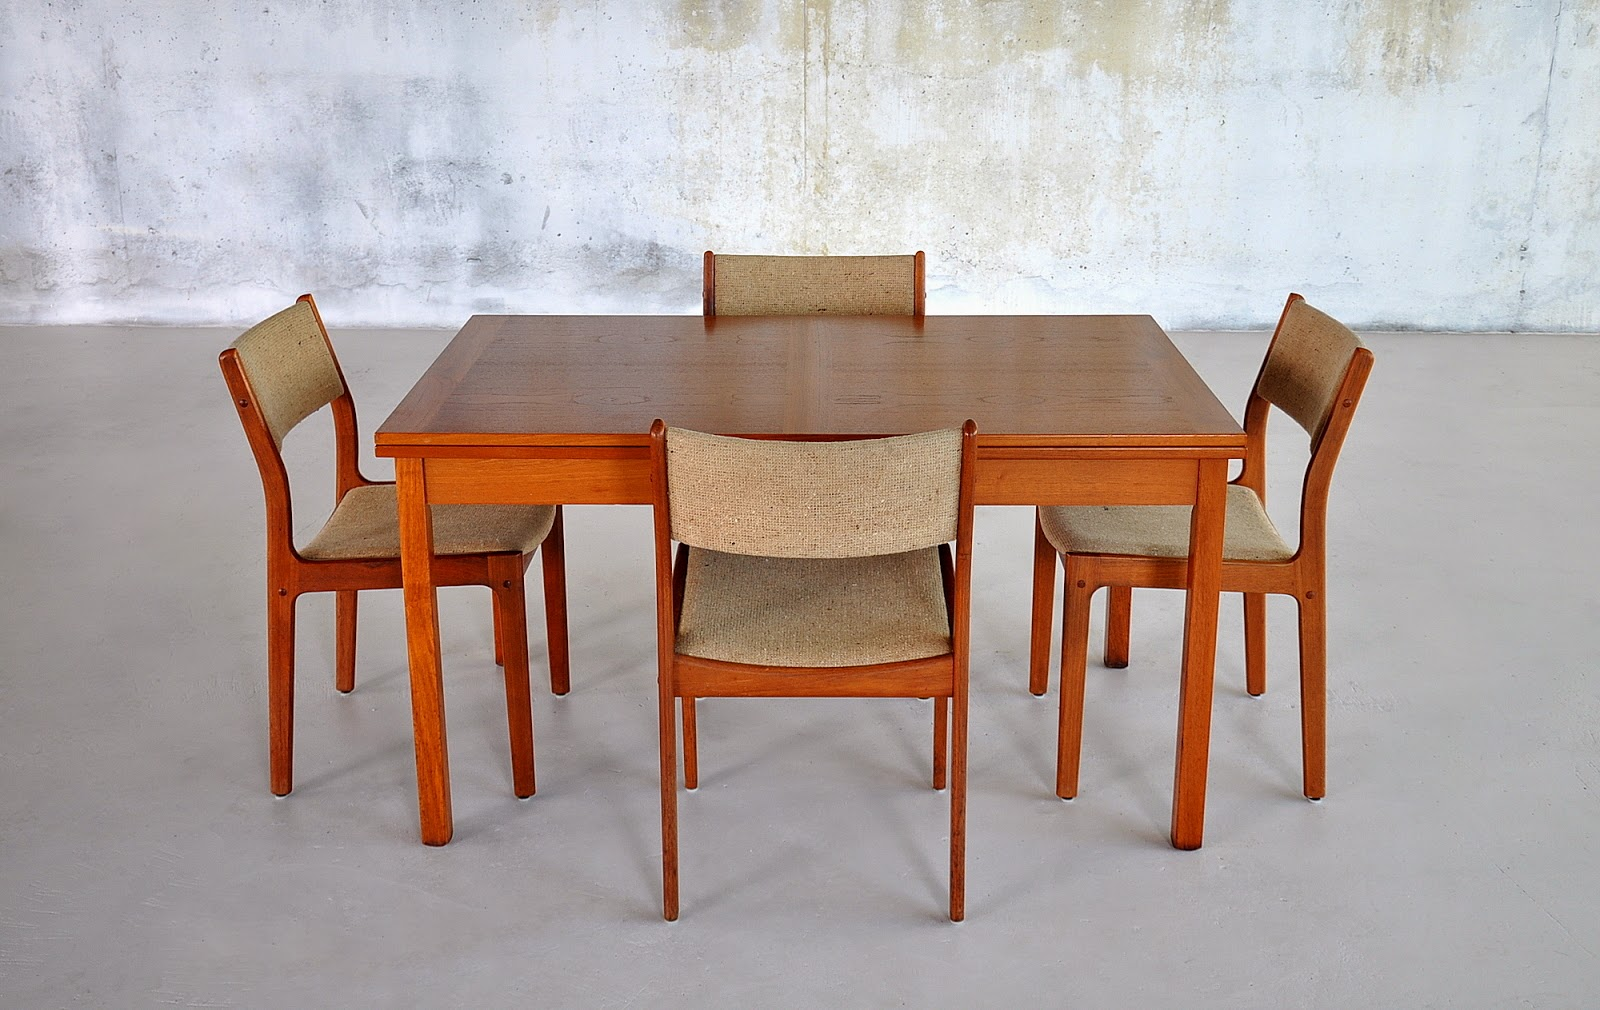 Select modern danish modern expandable teak dining room table for Danish modern dining room table